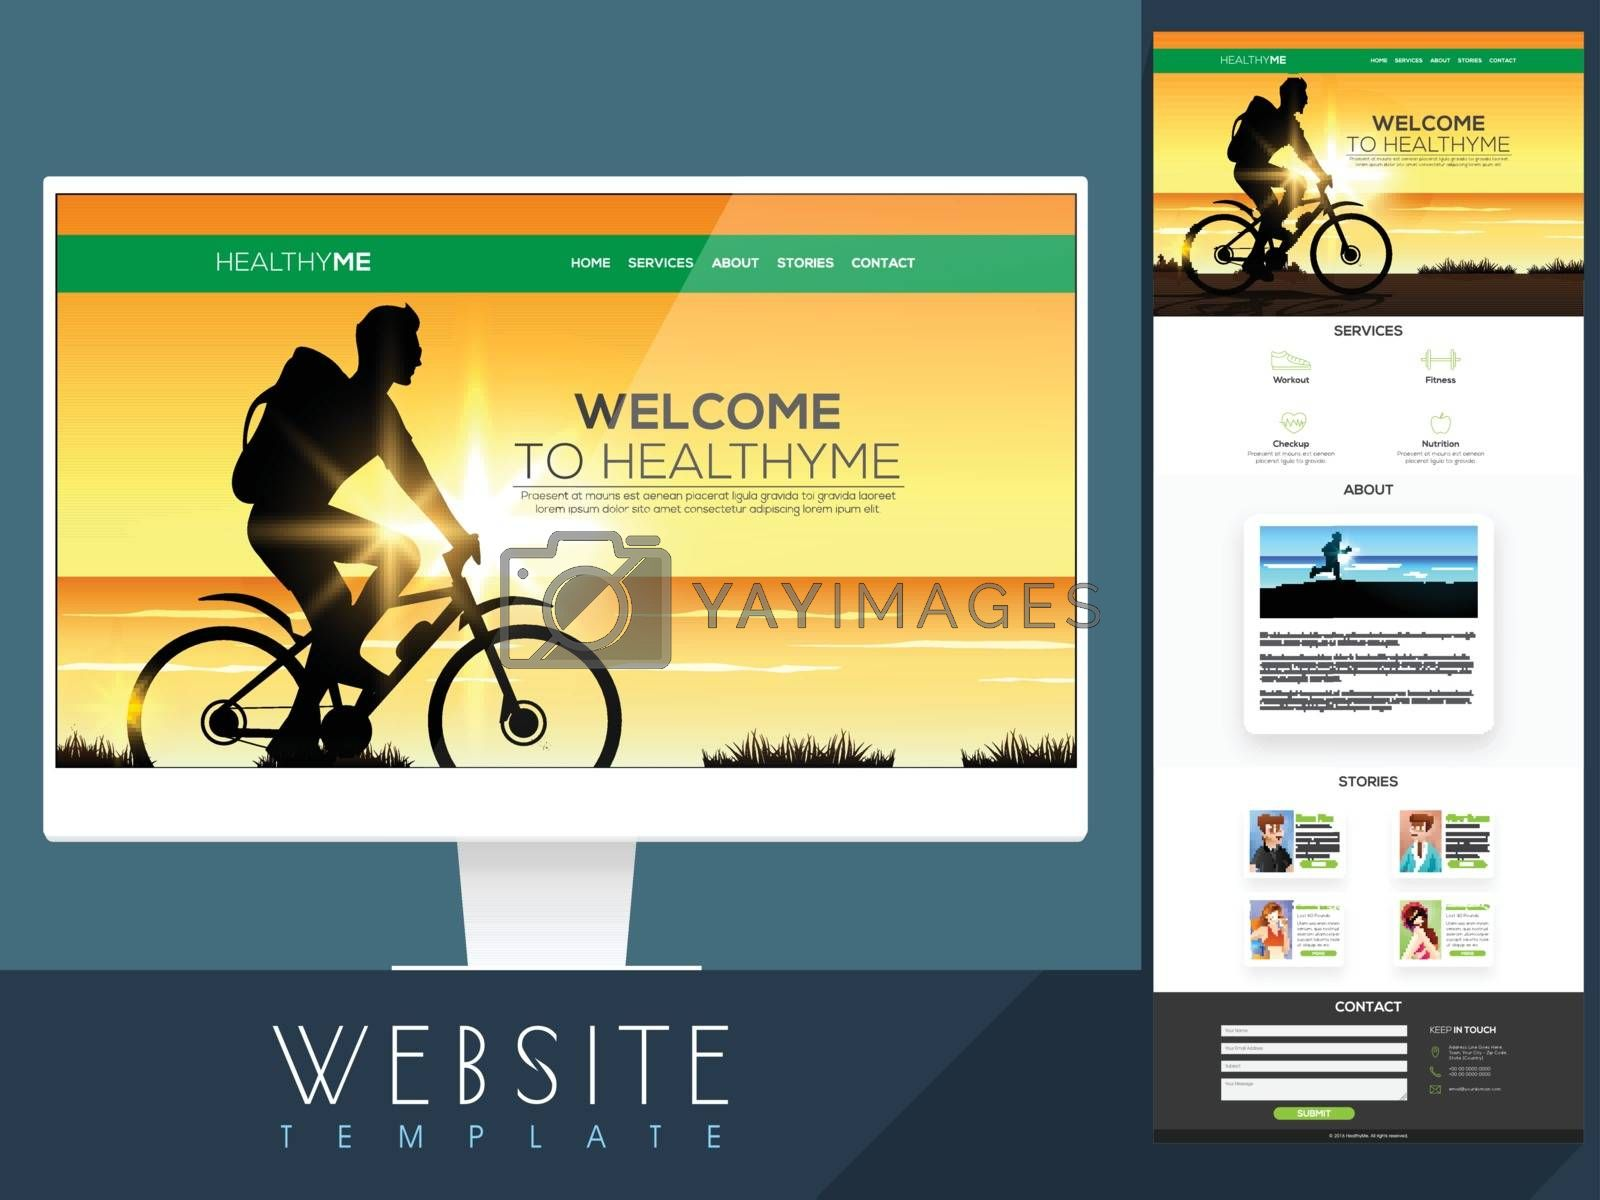 One Page Website Template design with desktop presentation for Healthy Life or Healthcare concept.